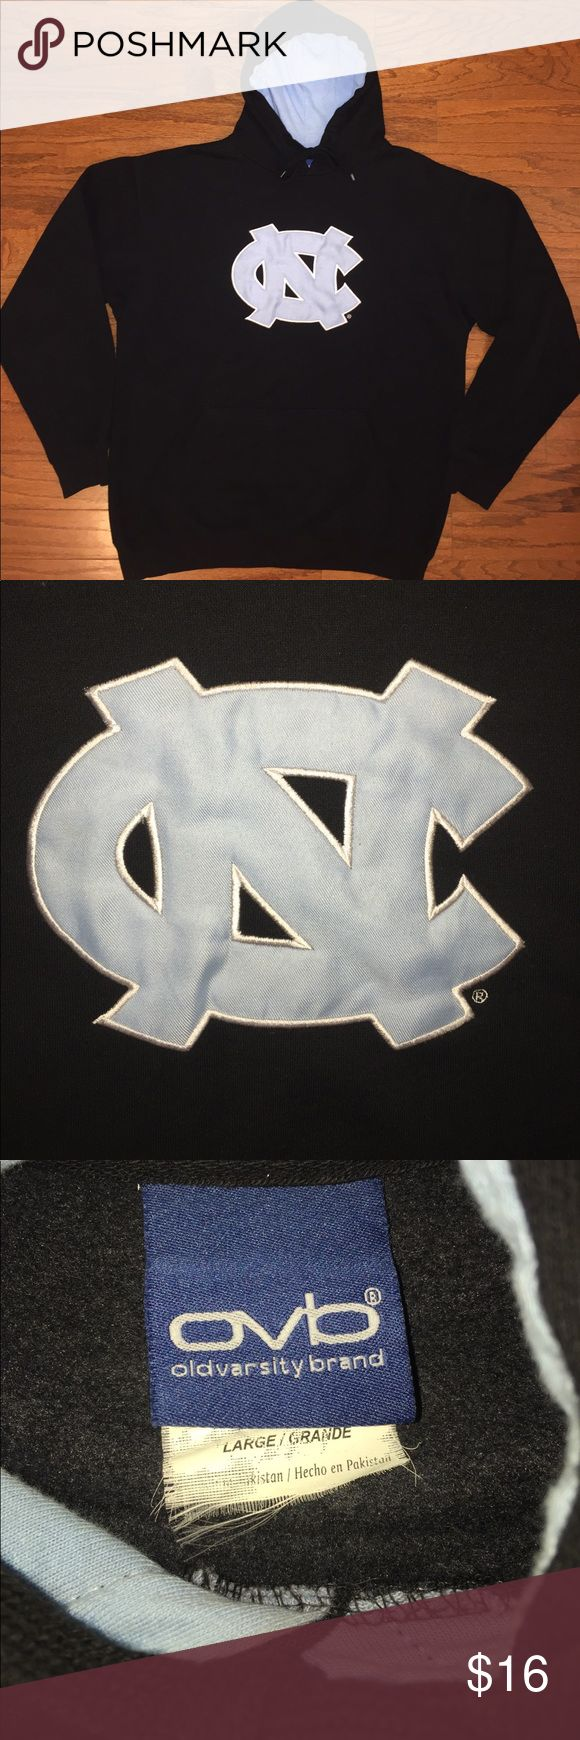 "UNC Tarheels Old Varsity Brand Sweatshirt Hoodie Good condition with some normal wear, black and Carolina blue colors with a UNC logo patch stitched on the front, made of 100% cotton material, men's size large, measurements are about 24"" pit to pit, 28"" tip to bottom and 24"" shoulder to cuff, Great Looking Hoodie, Nice Quality! Bundle for an Extra Discount! Old Varsity Brand Shirts Sweatshirts & Hoodies"